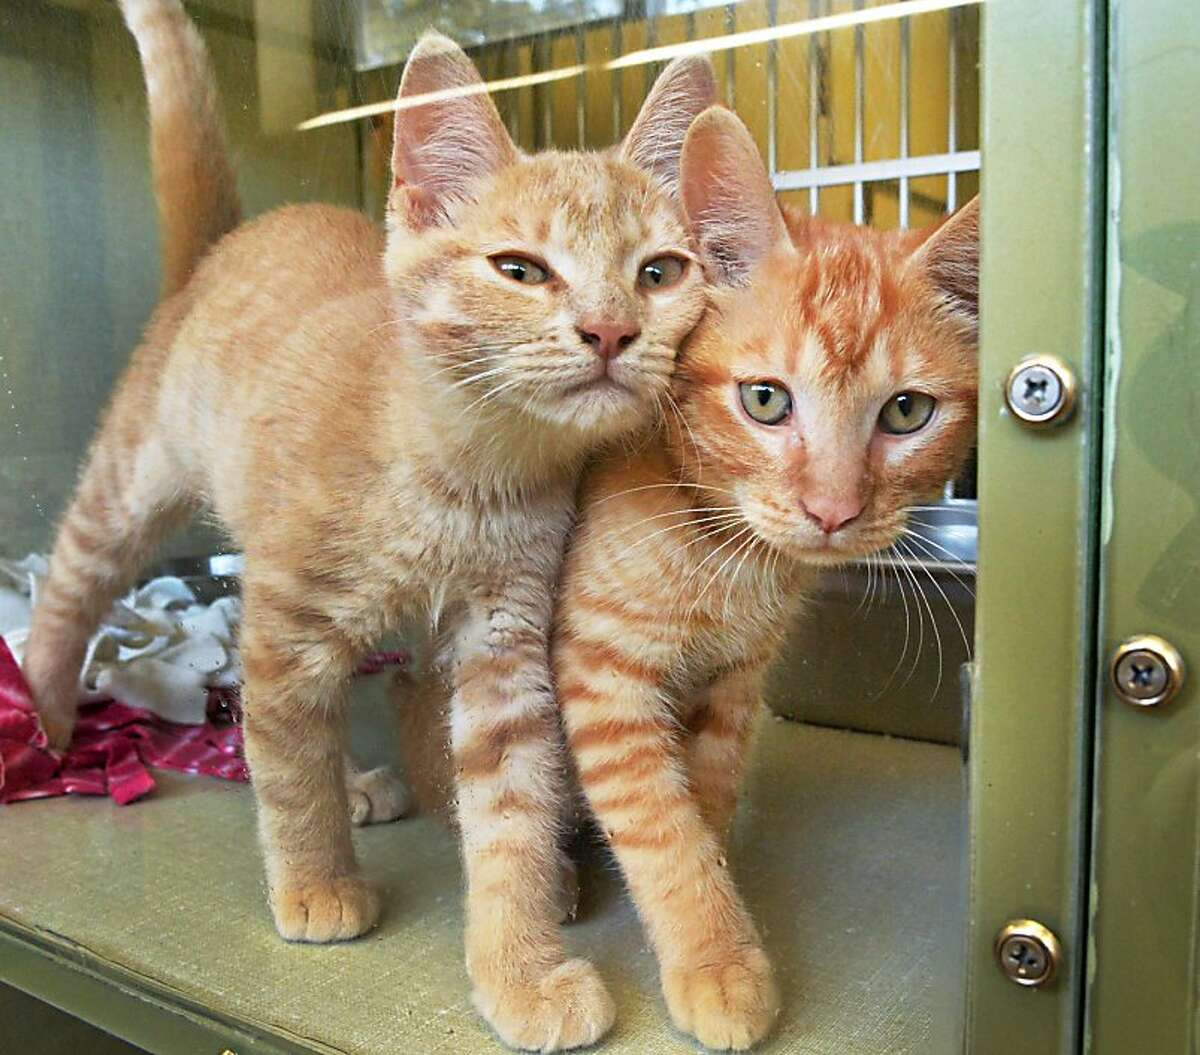 We're not Siamese twins! We just walk like we're conjoined: Ray and Carl are inseparable at the Animal Protective Foundation in Scotia, N.Y.